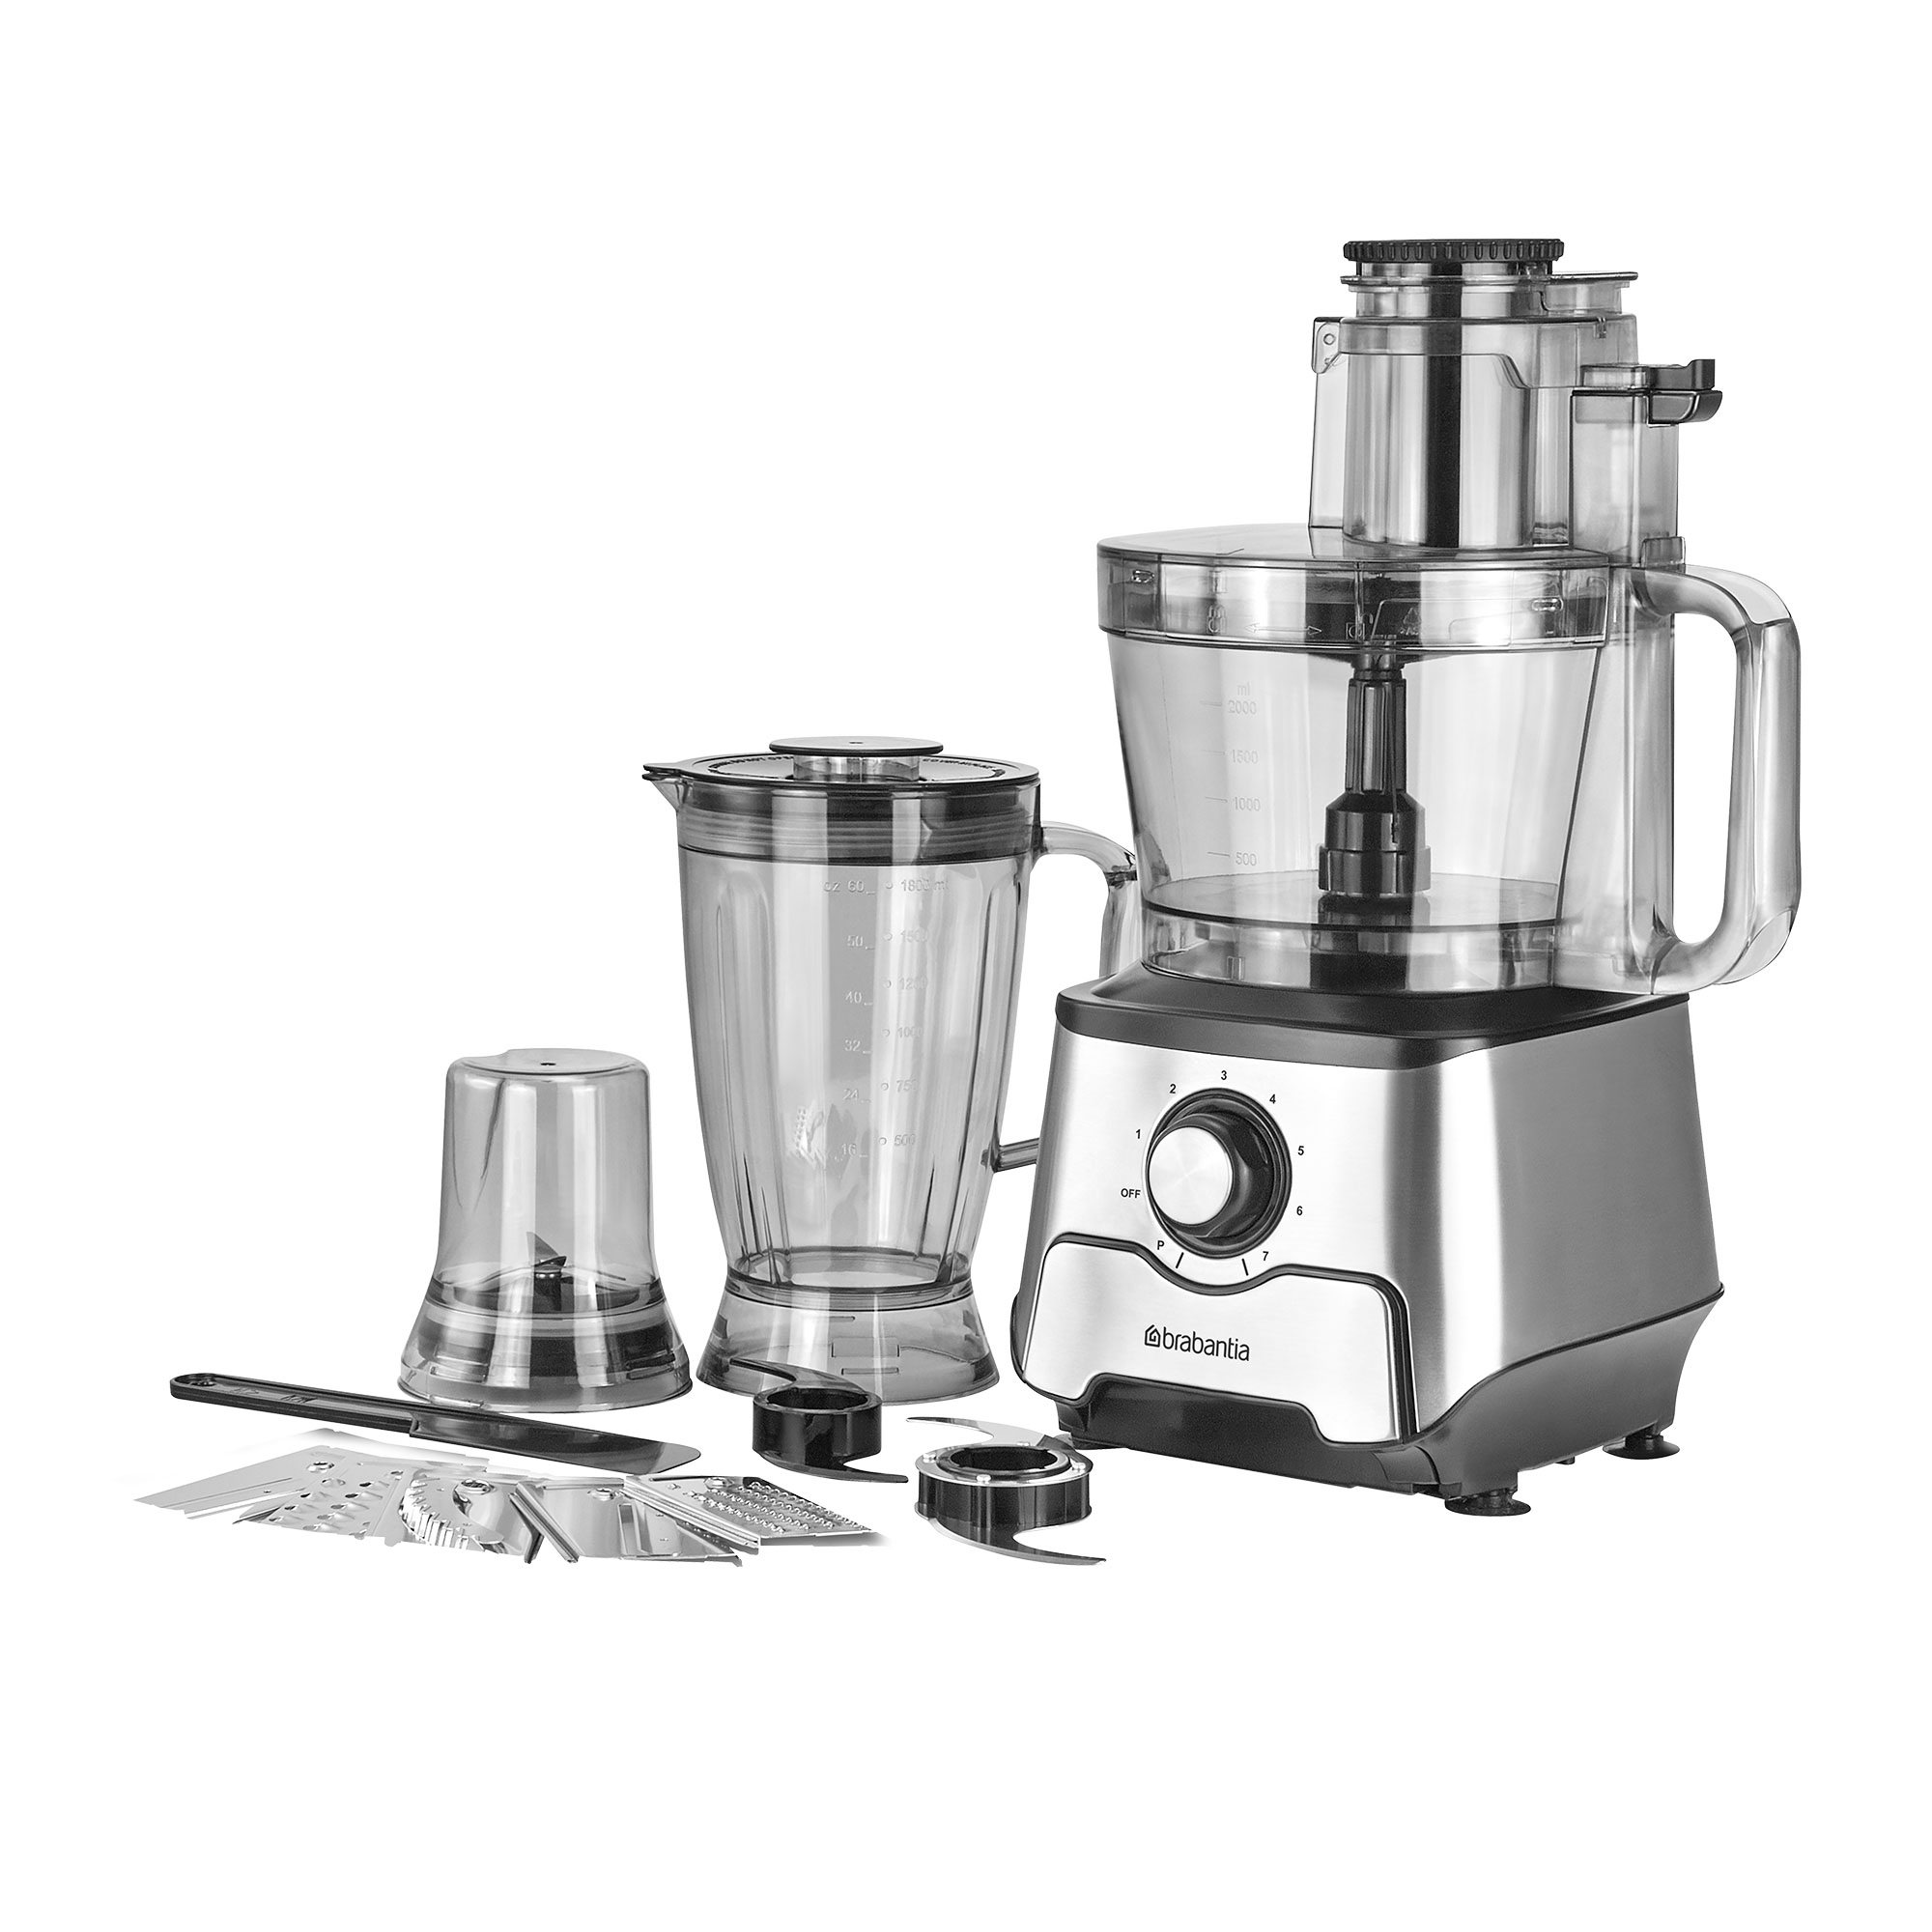 Brabantia Food Processor 14 Cup